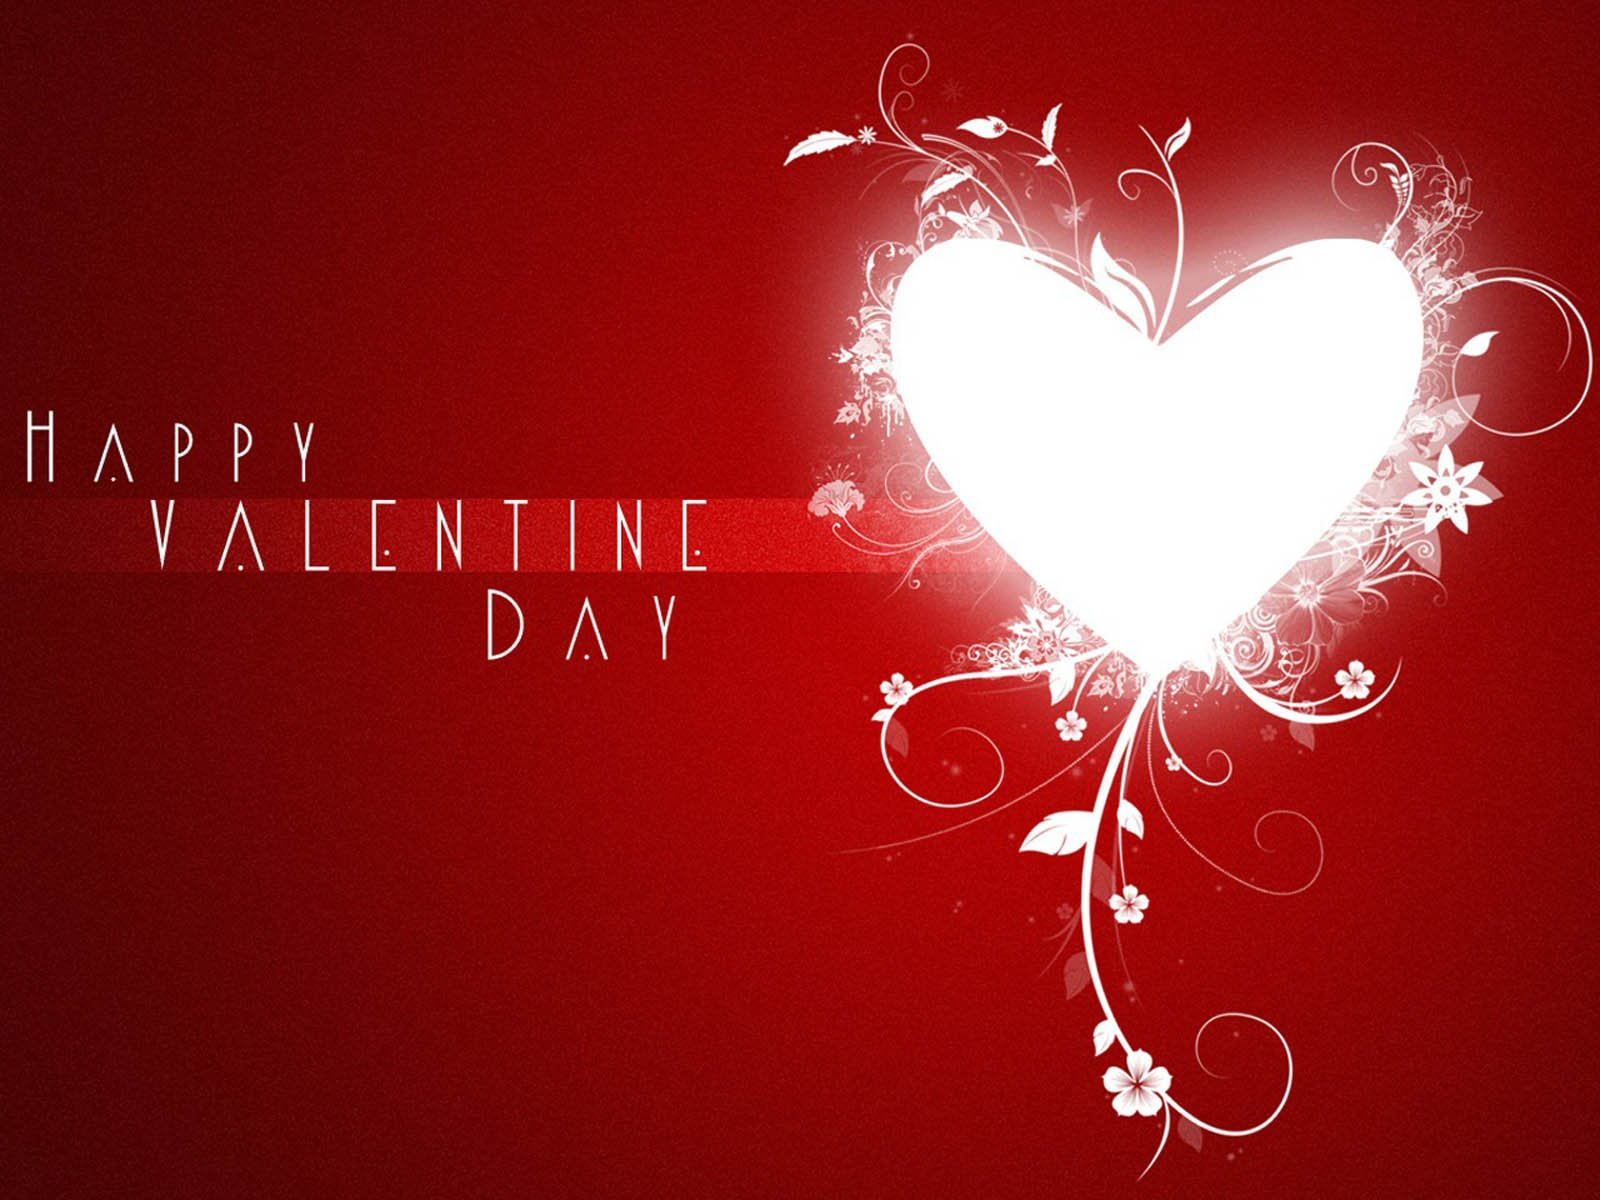 Valentines Day Desktop Wallpapers Valentines Day Wallpapers 1600x1200